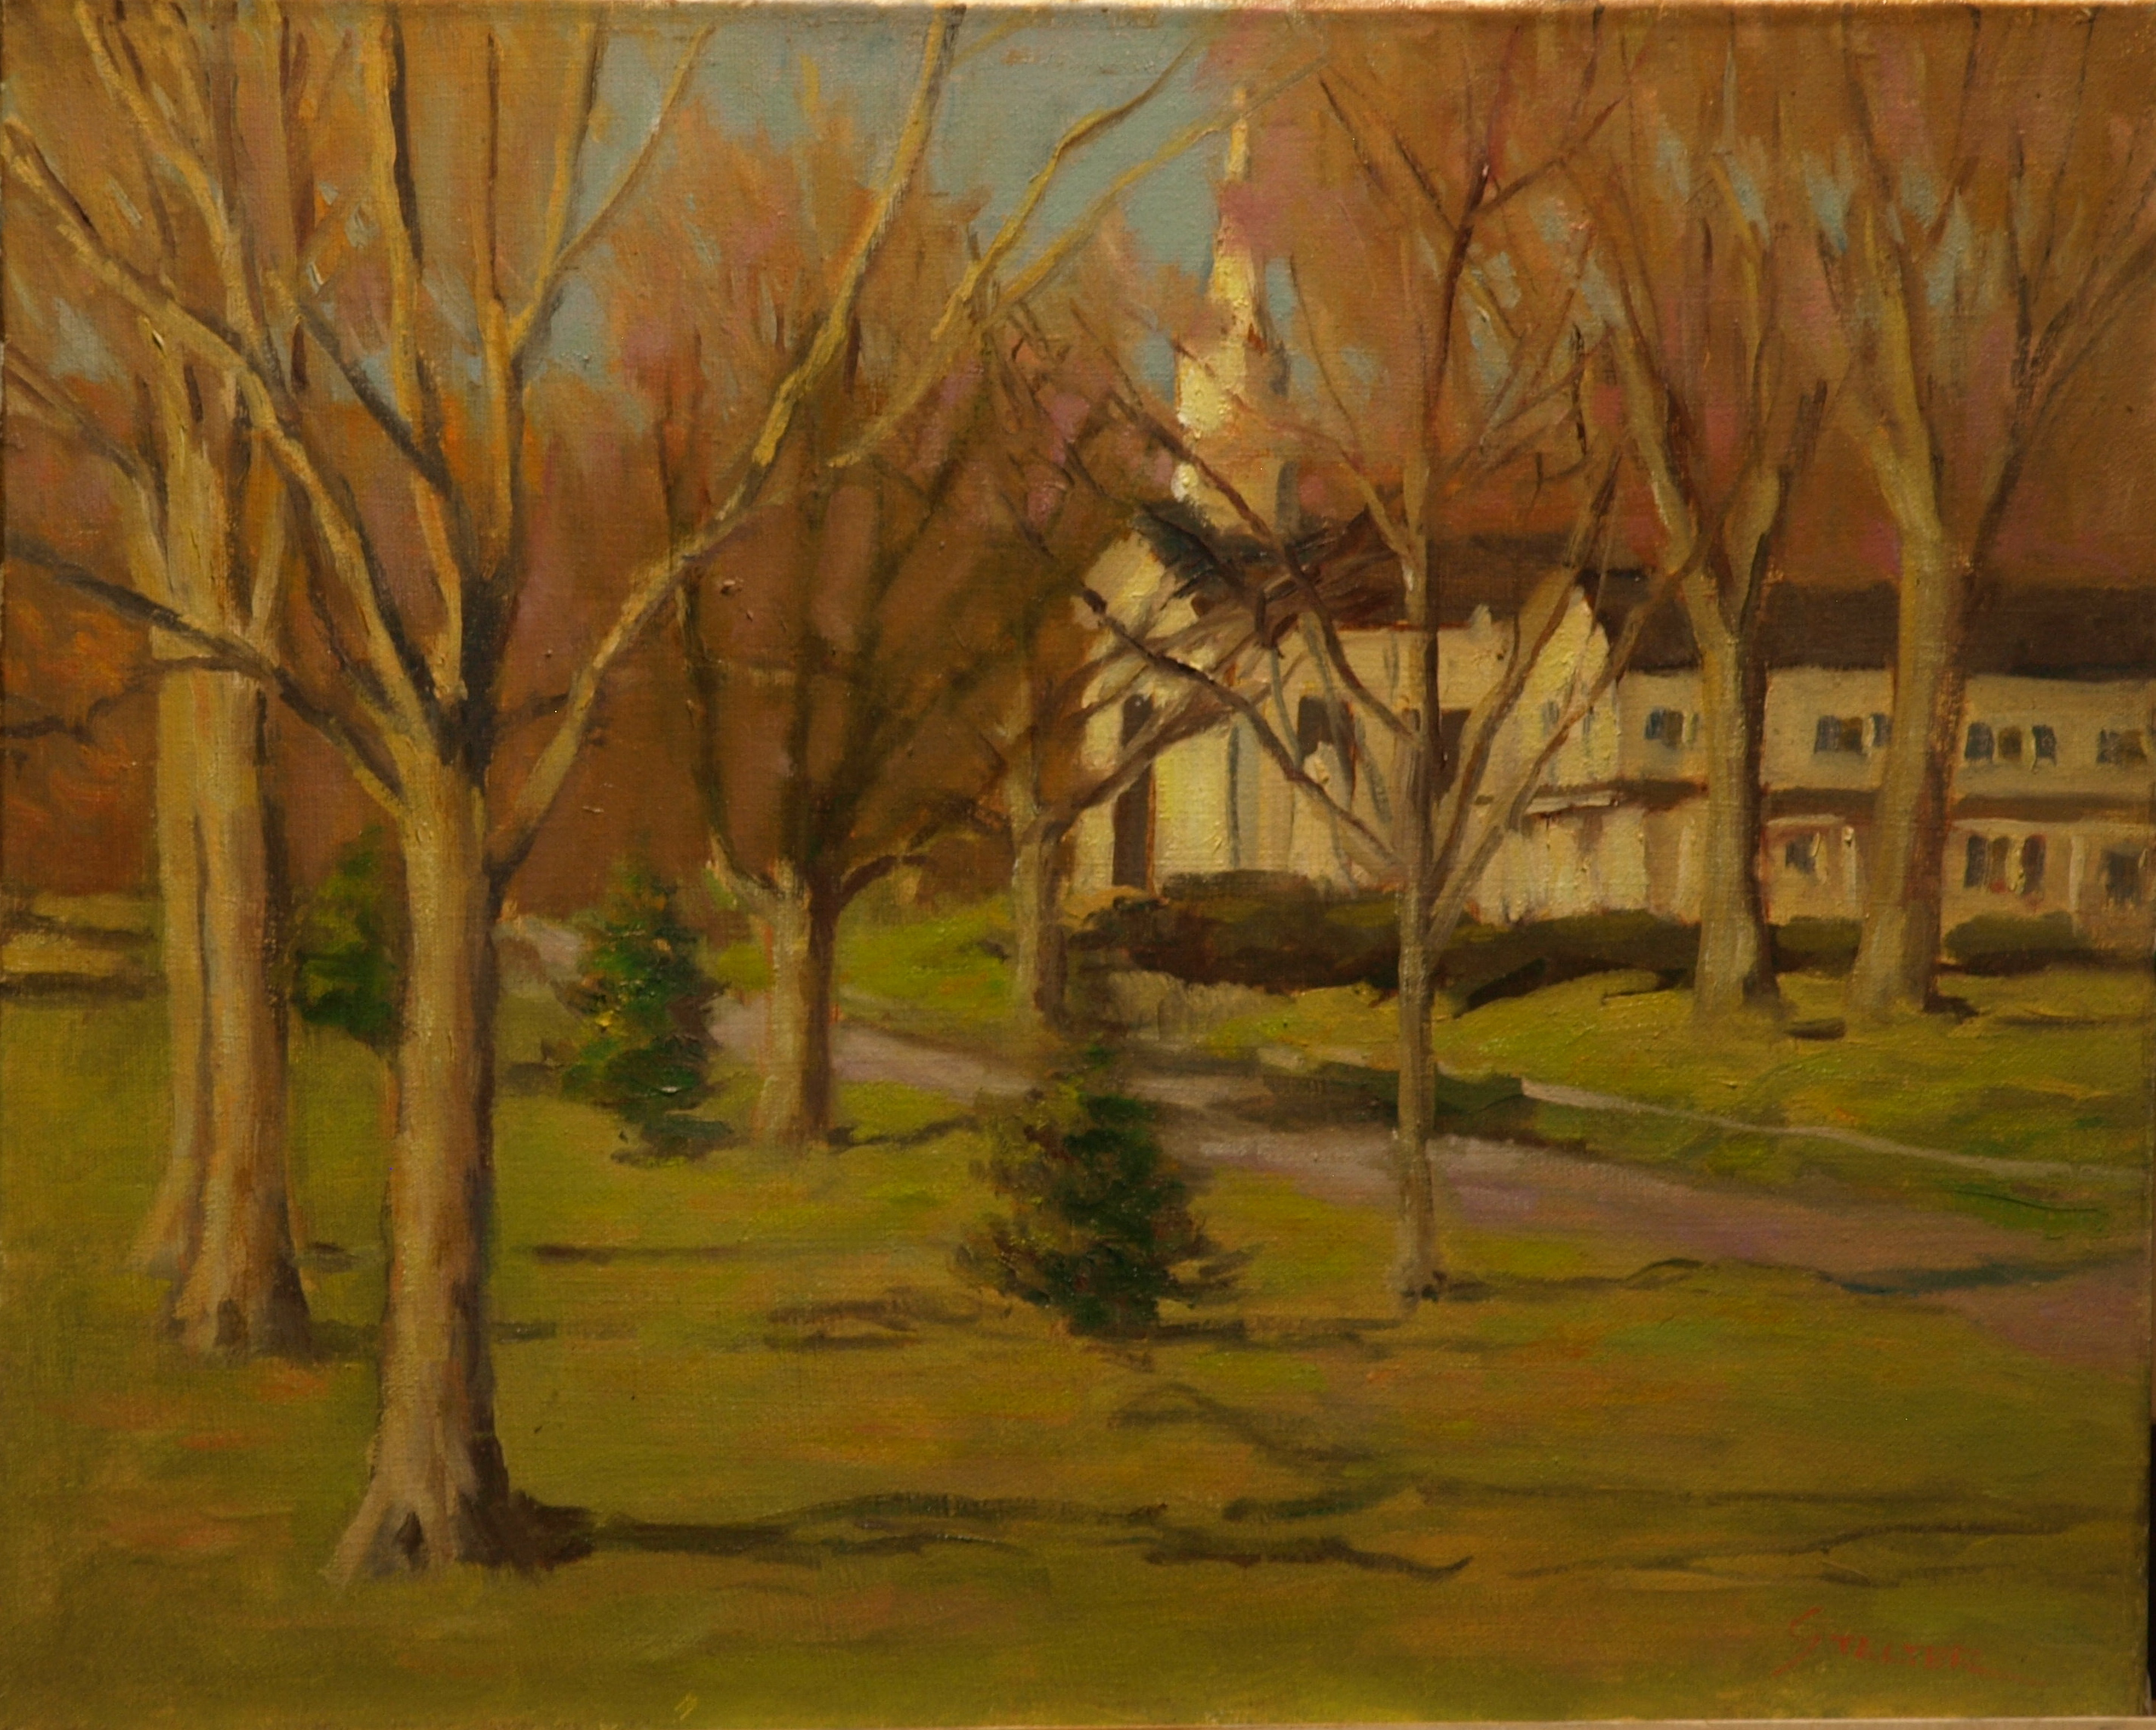 Church on the Green, Oil on Canvas, 16 x 20 Inches, by Richard Stalter, $450